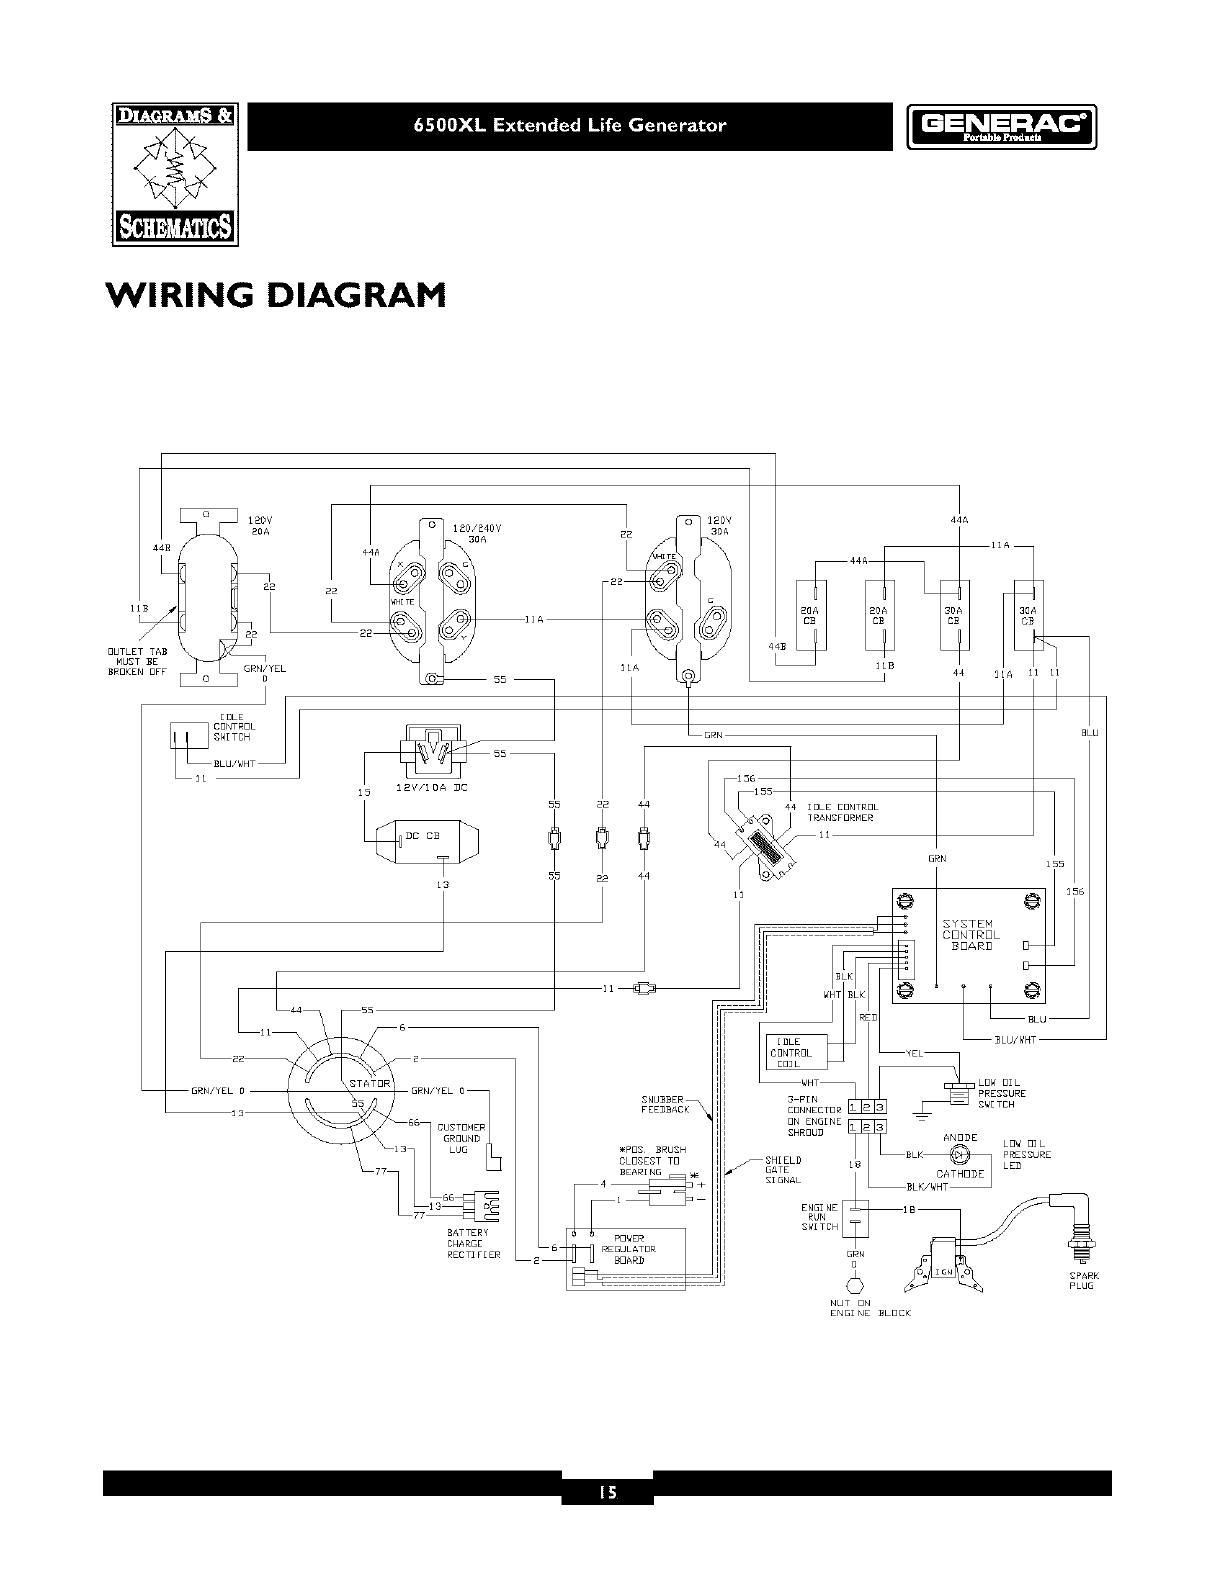 abacbfe4 09c9 46f3 b904 b7a0ca98baaa bgf page 15 of generac portable generator 6500xl user guide abac air compressor wiring diagram at alyssarenee.co